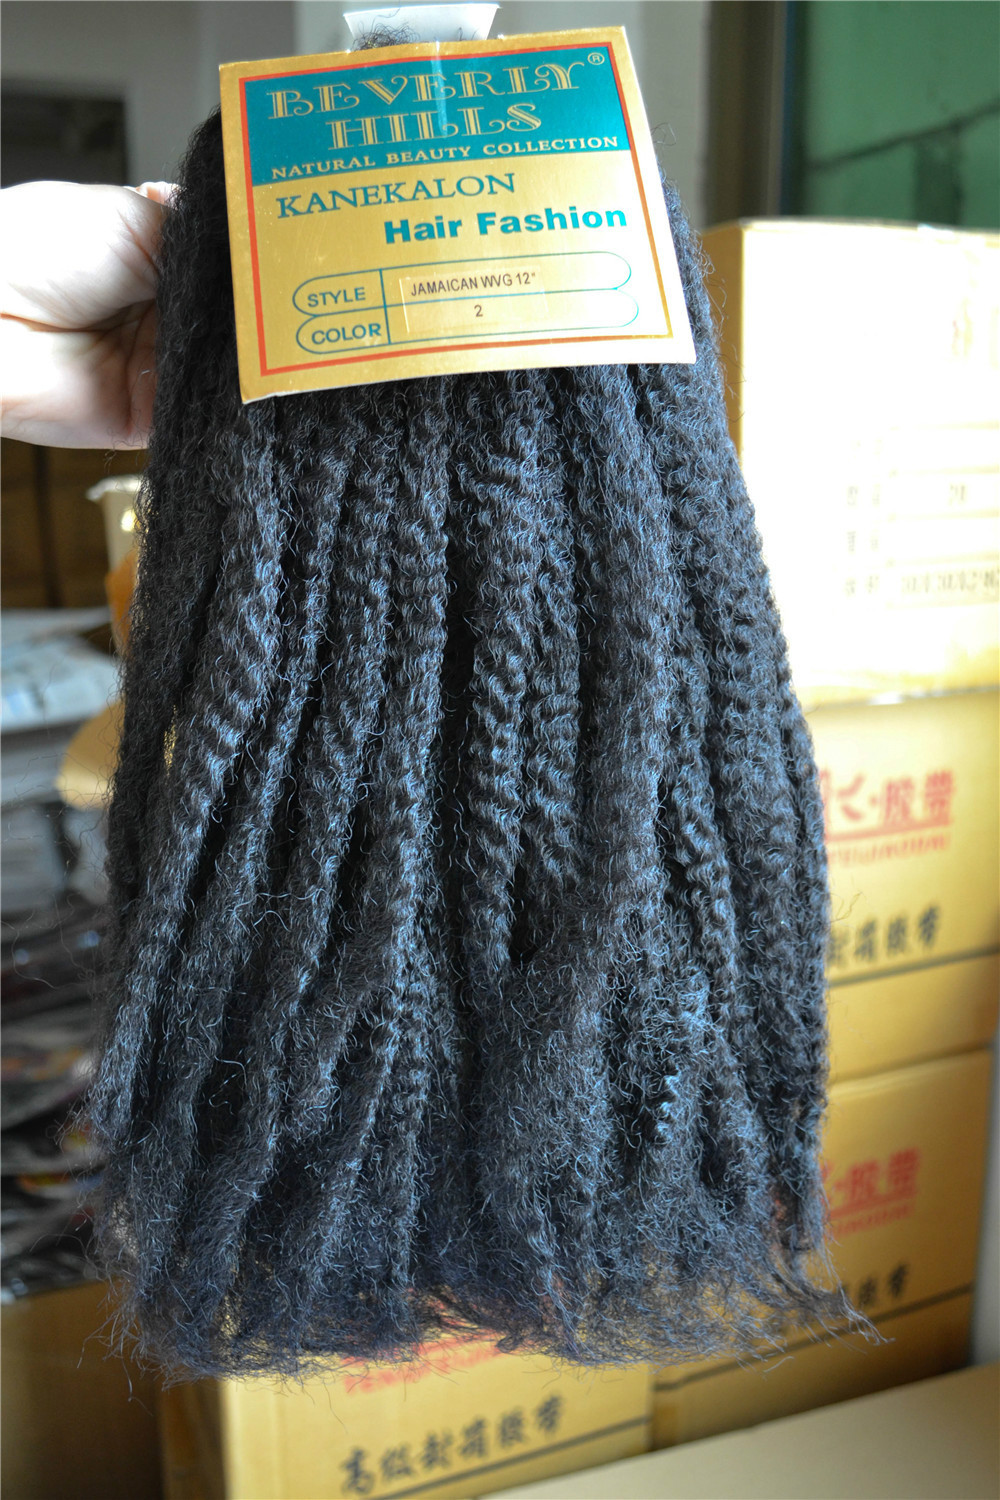 s-FreeShipping synthetic braiding hair jamaica braided extension12 inch 2# GOOD QUALITY - Beauty Lady's World store